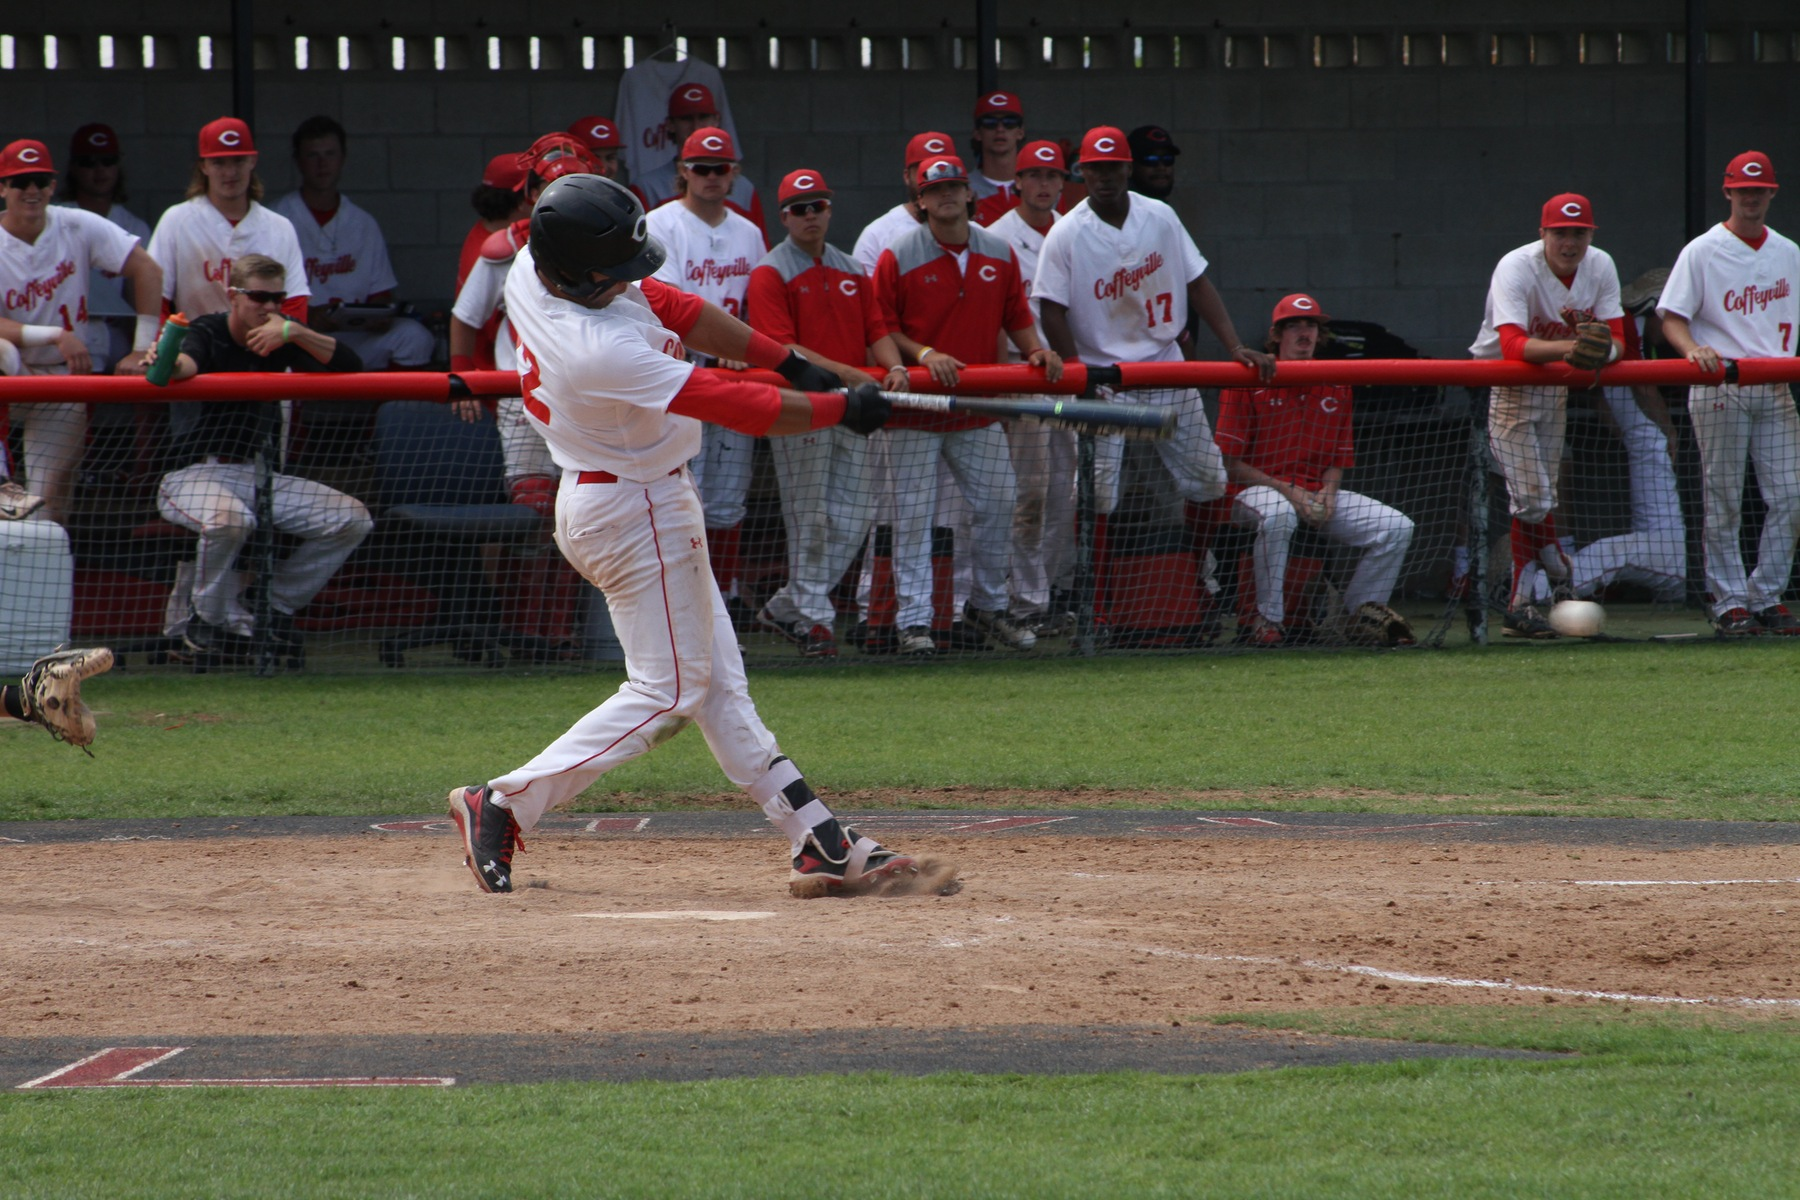 Red Raven's Bats Come Alive, Take Two From Highland, 8-4 & 14-2